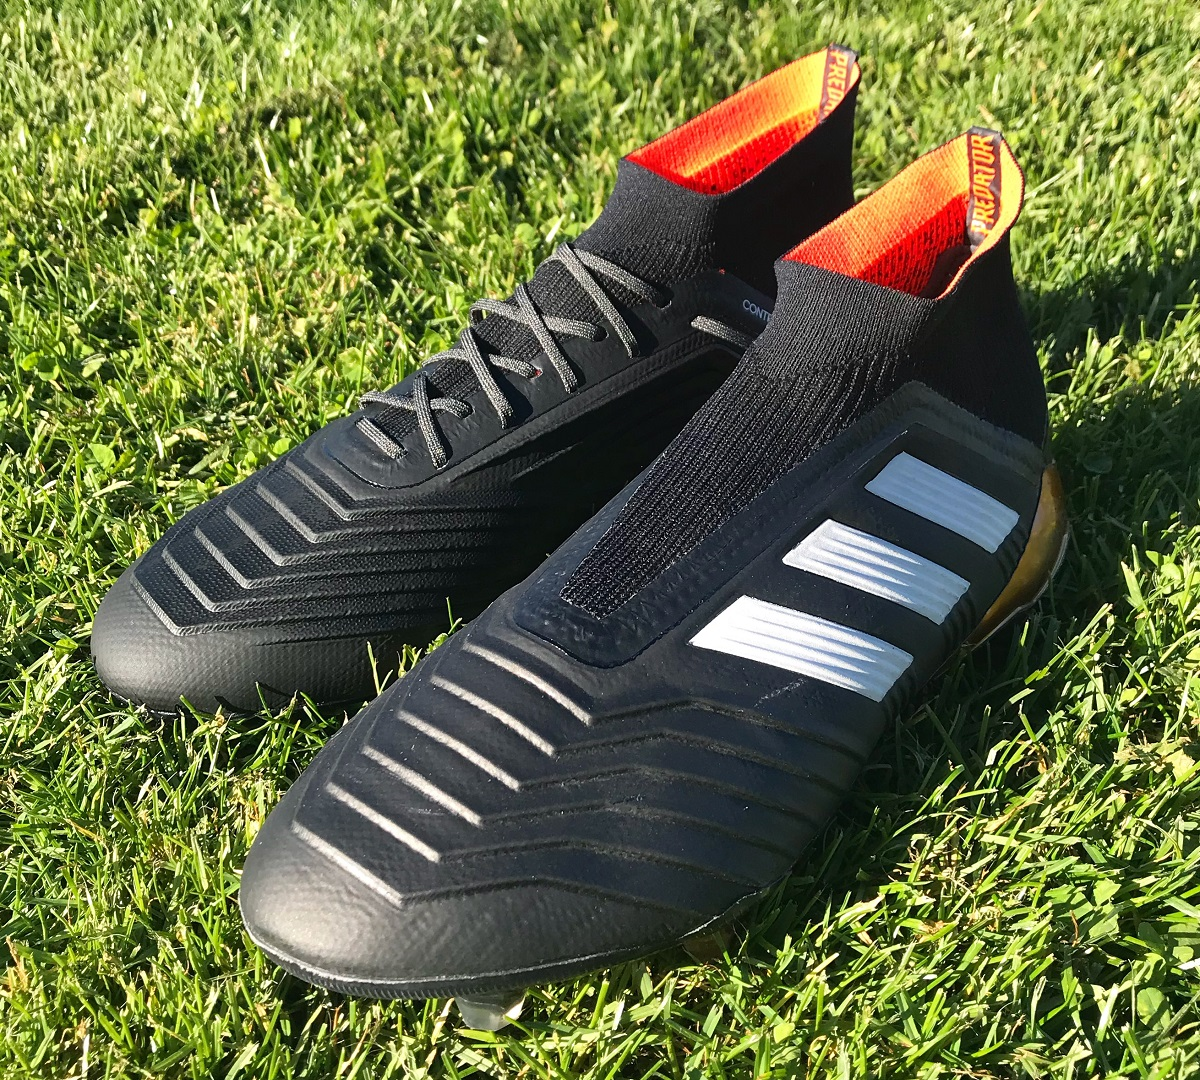 6c87a1252 adidas Predator 18+ vs 18.1 - What Is The Difference